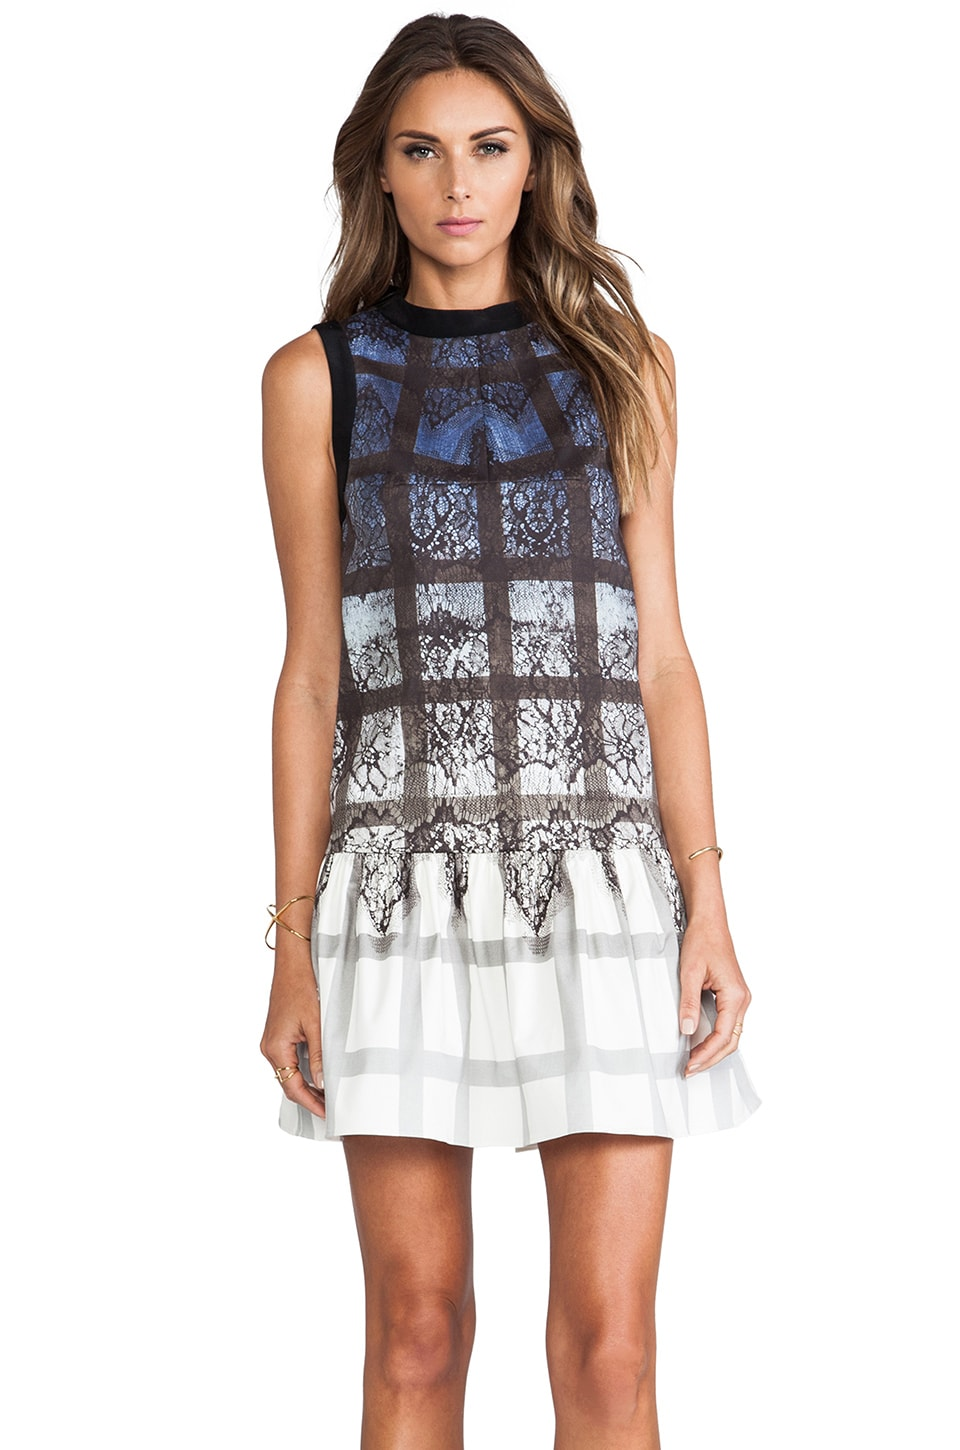 Tibi Lace Plaid Dress in Denim Multi